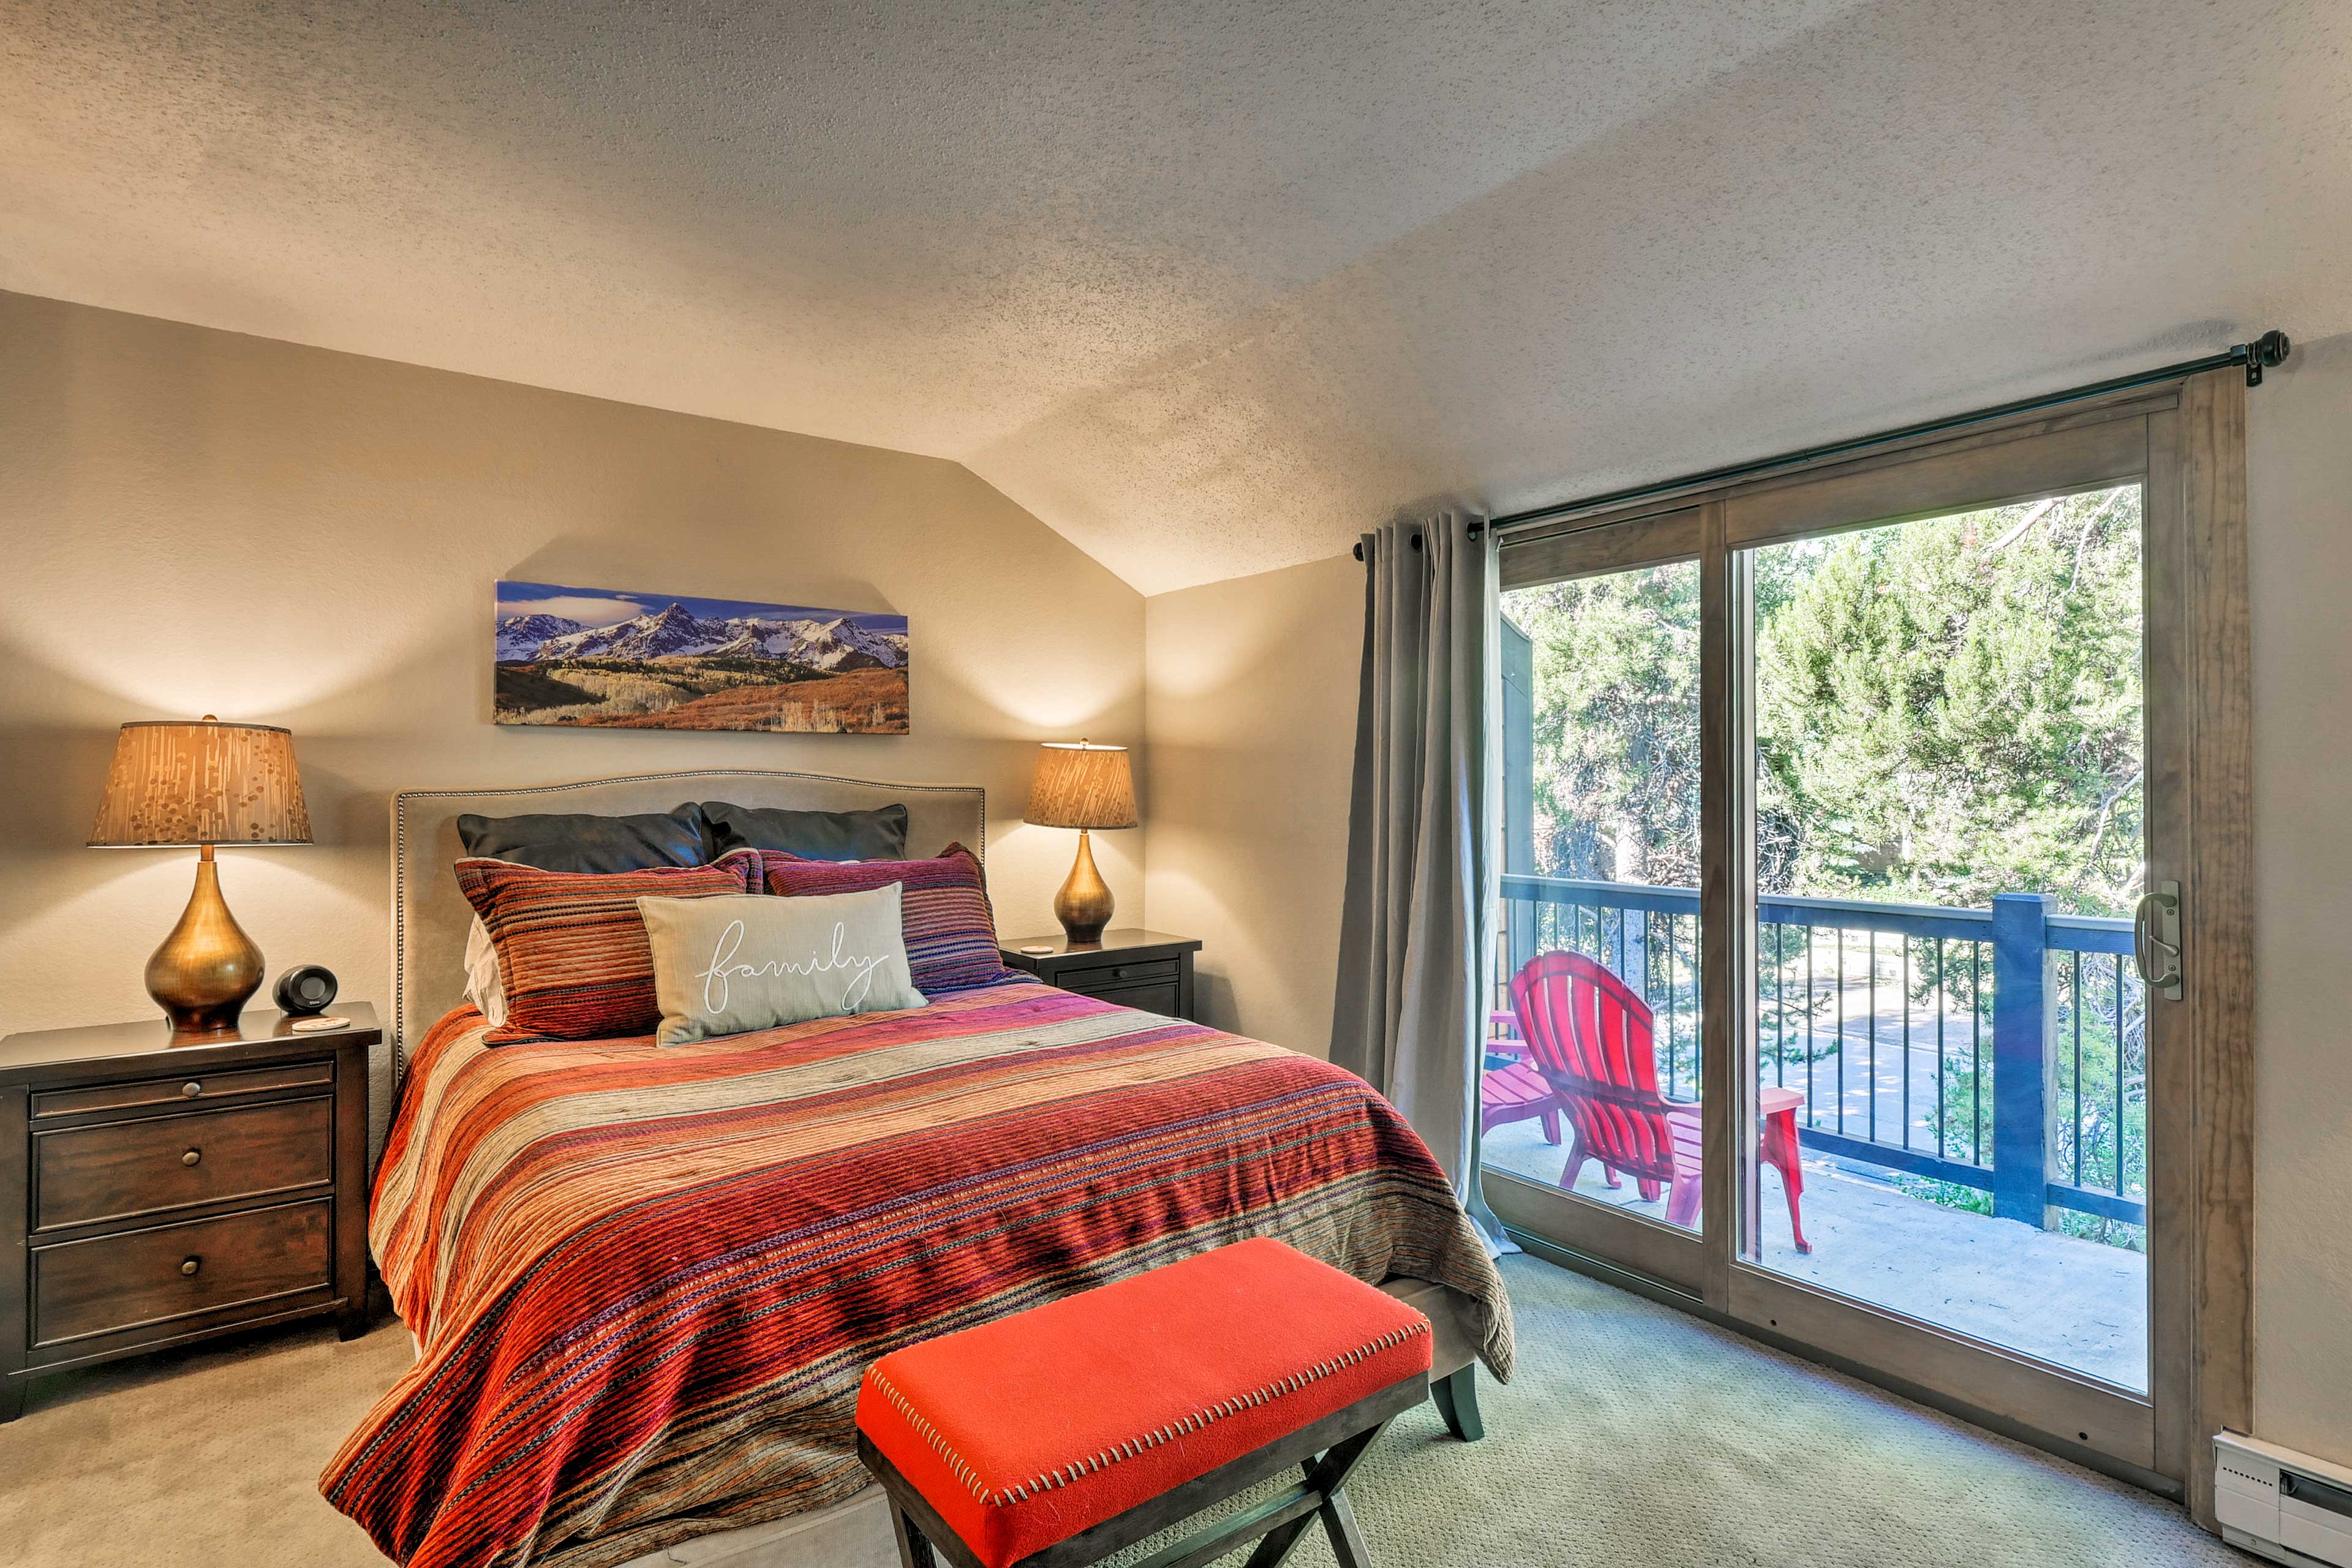 Sliding glass doors off the master bedroom lead to a private deck.